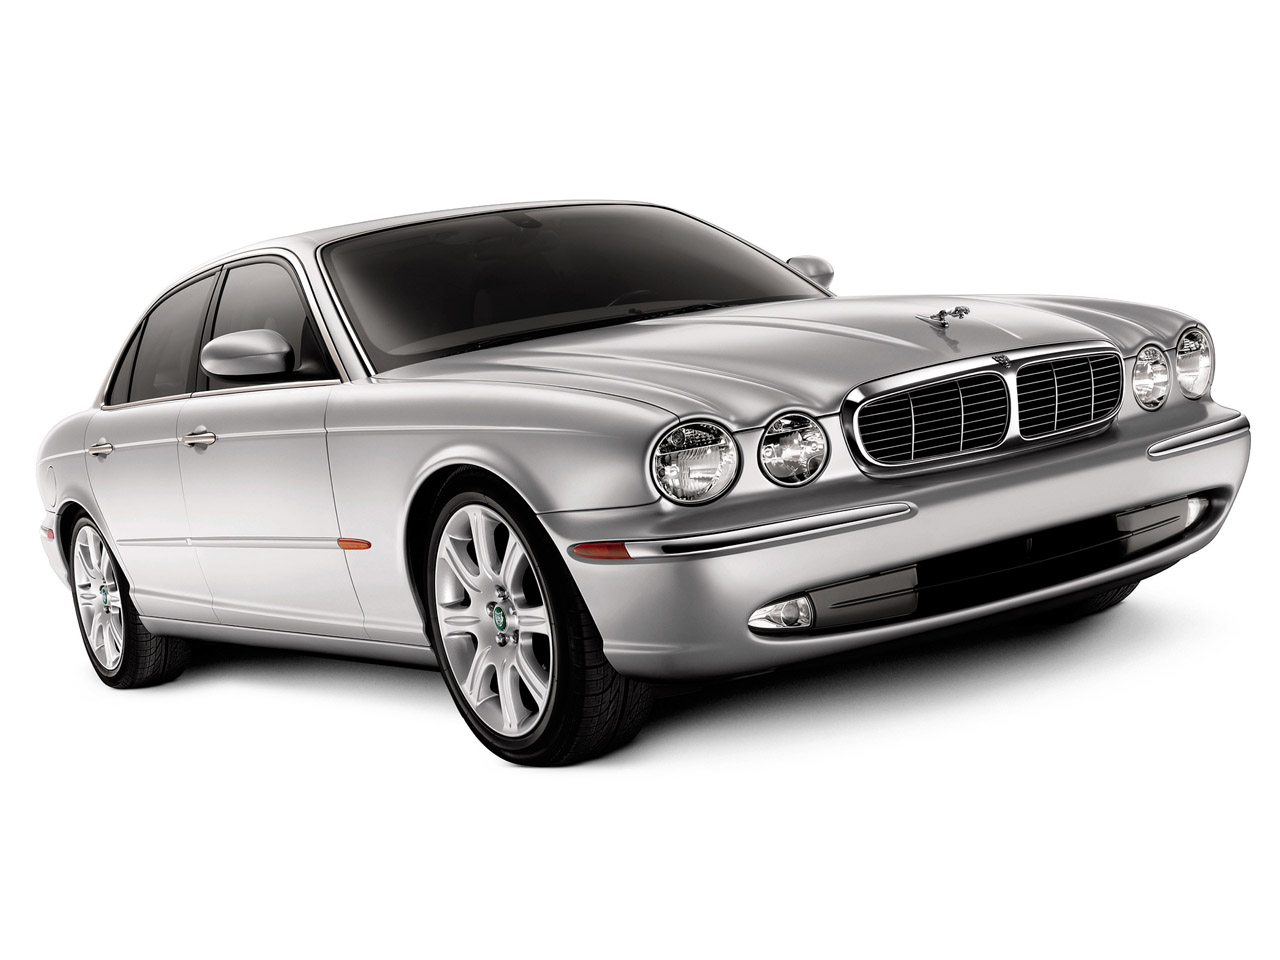 xj cars issue com jaguar articles switch news img